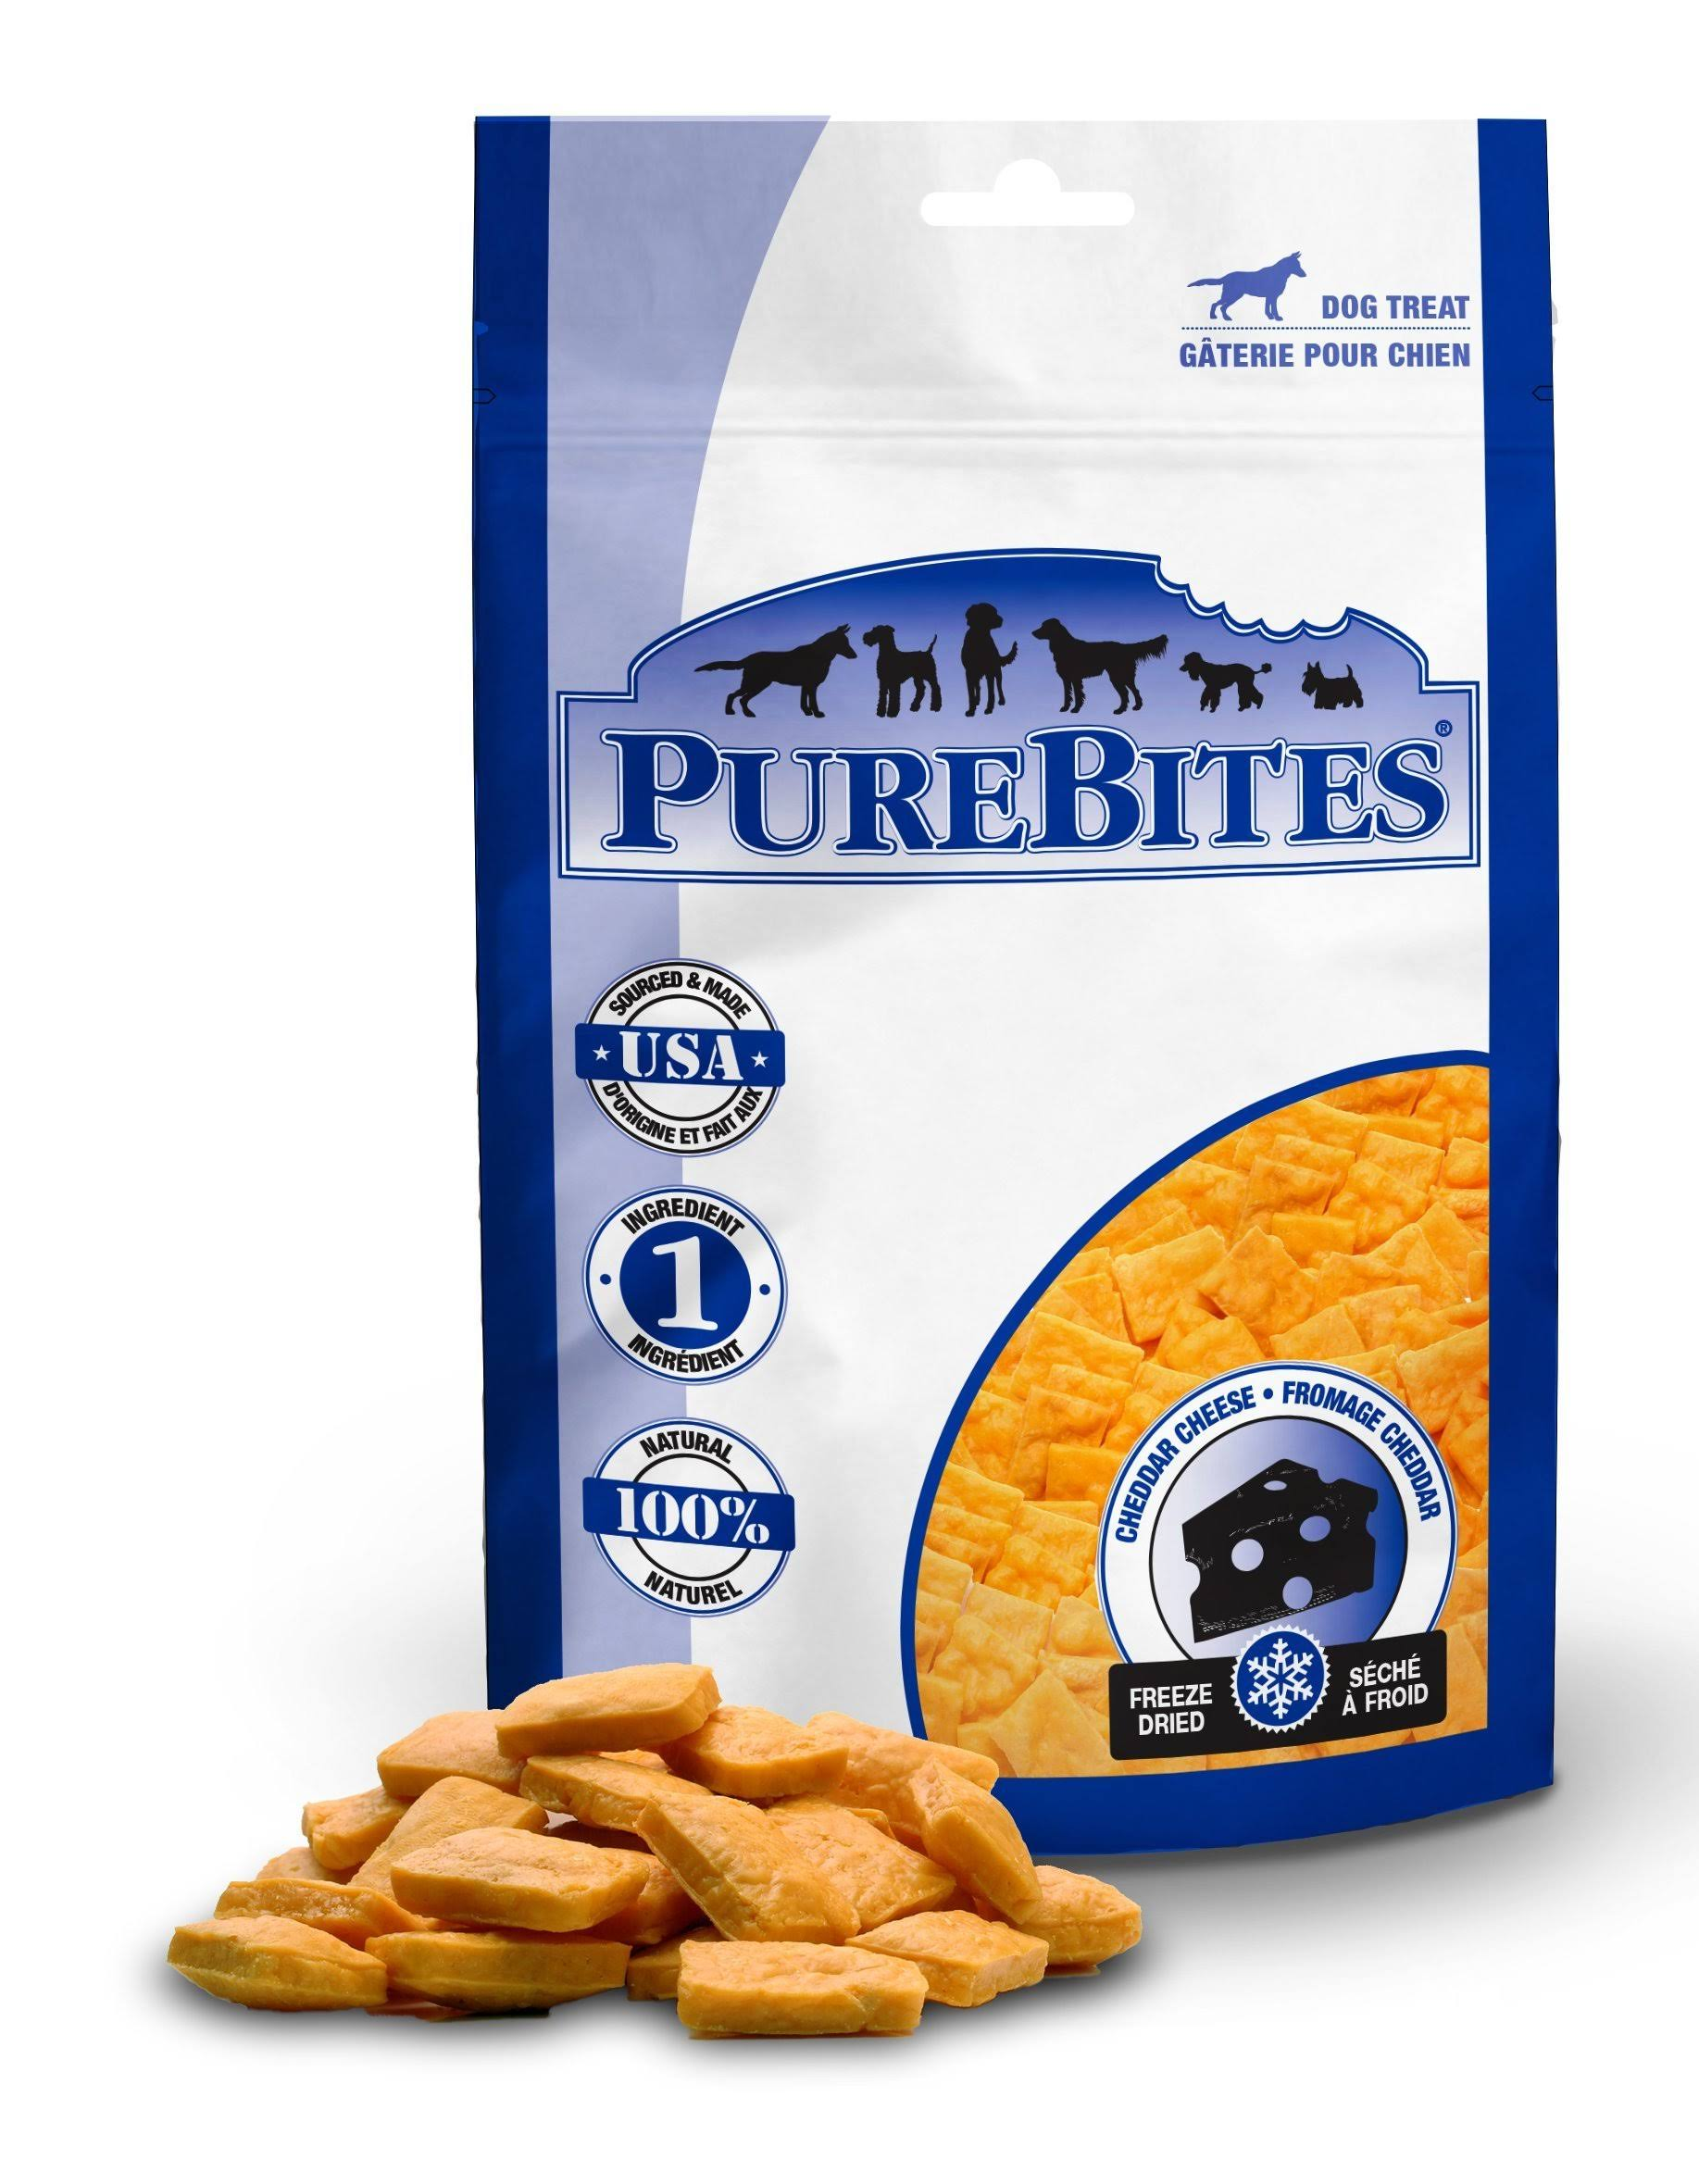 PureBites Cheddar Cheese Dog Treat - 2oz